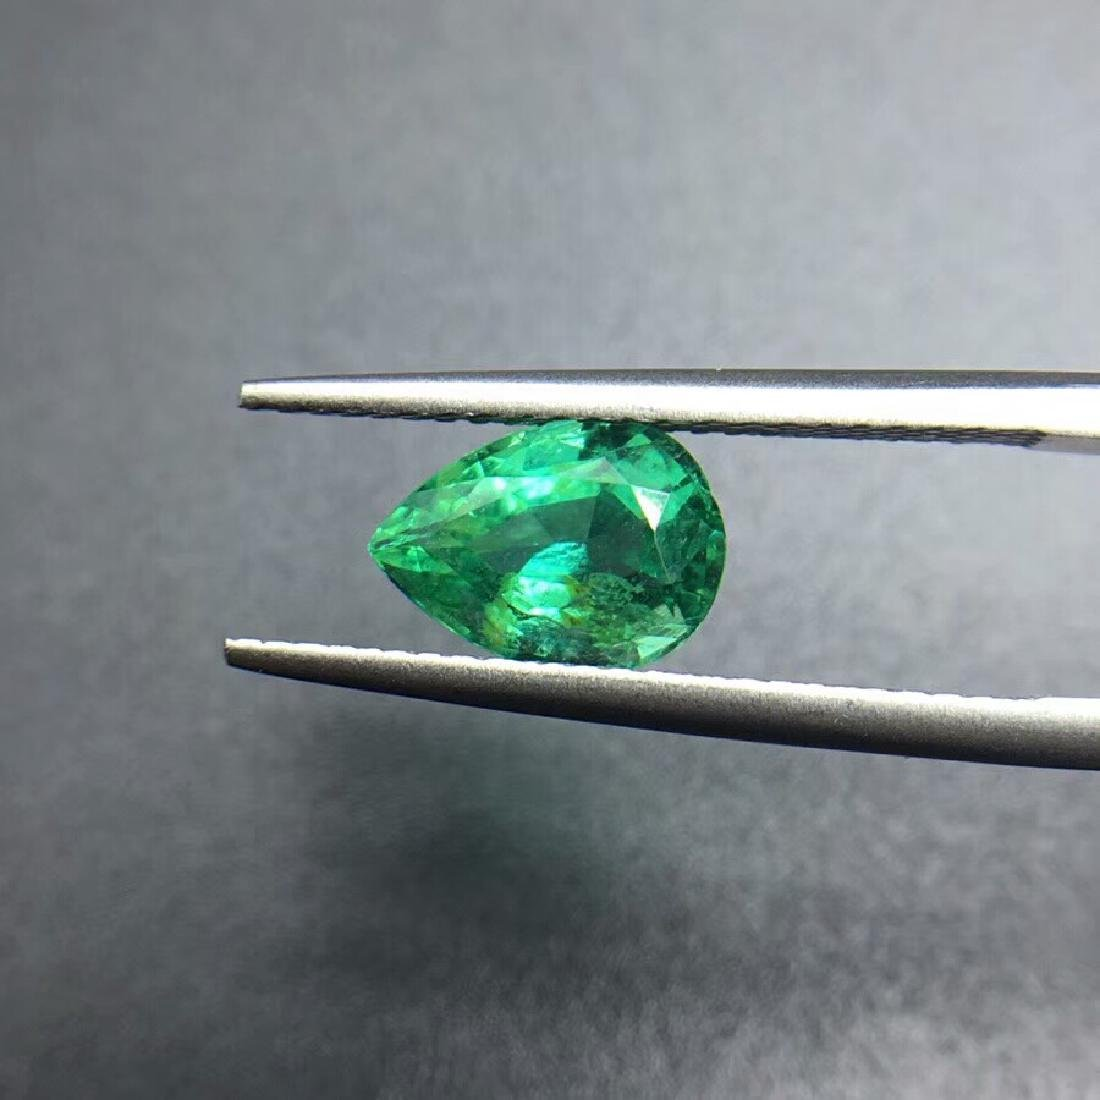 1.43 ct Emerald 6.2*8.9*4.7 mm Pear Cut